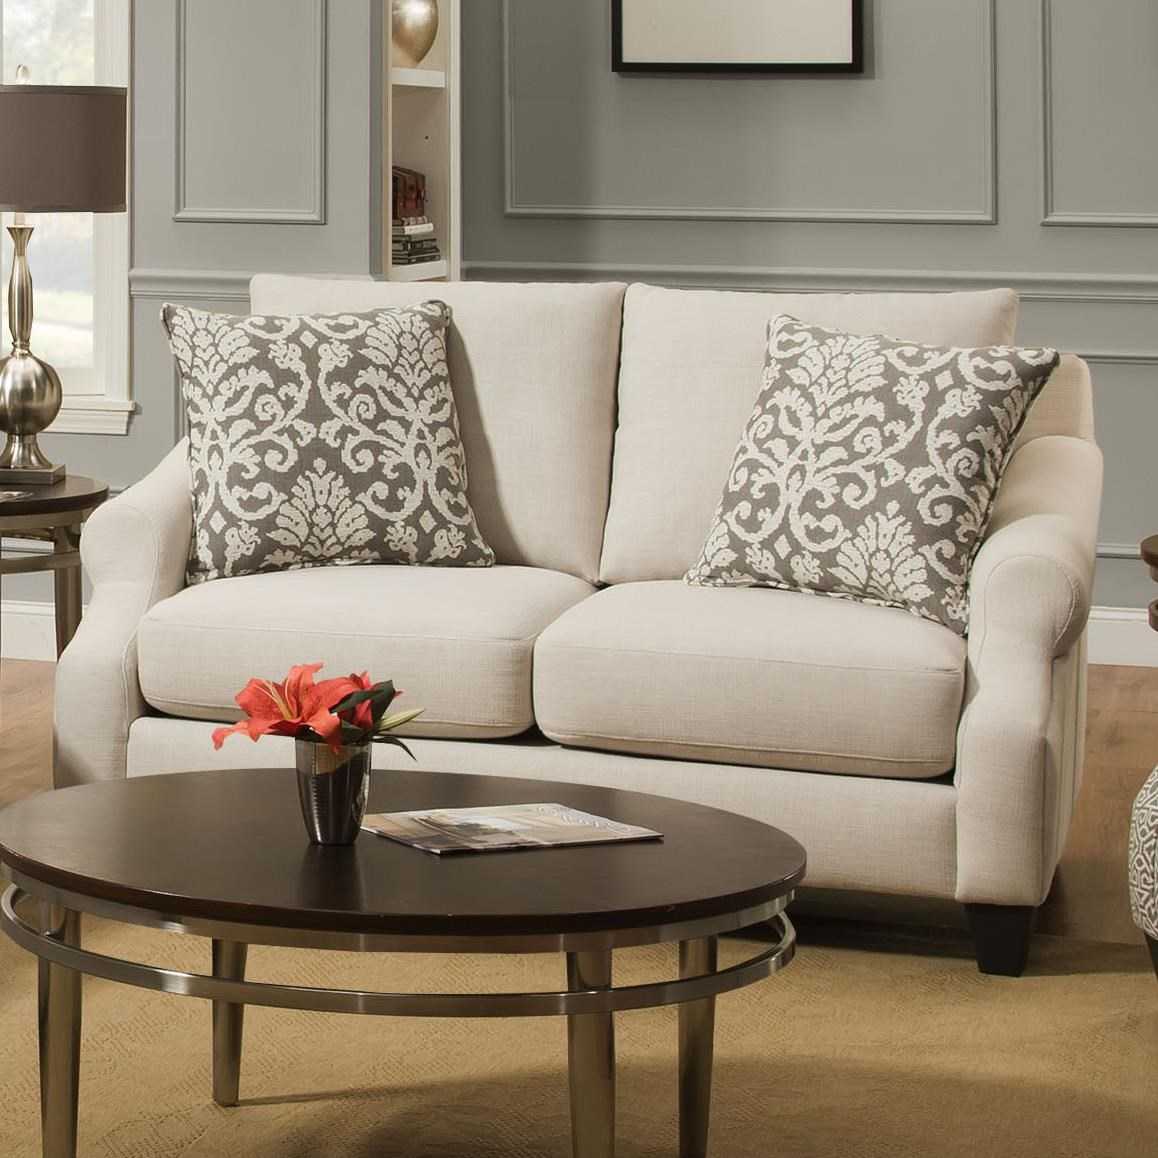 Corinthian 56A0 Loveseat With Casual Elegance